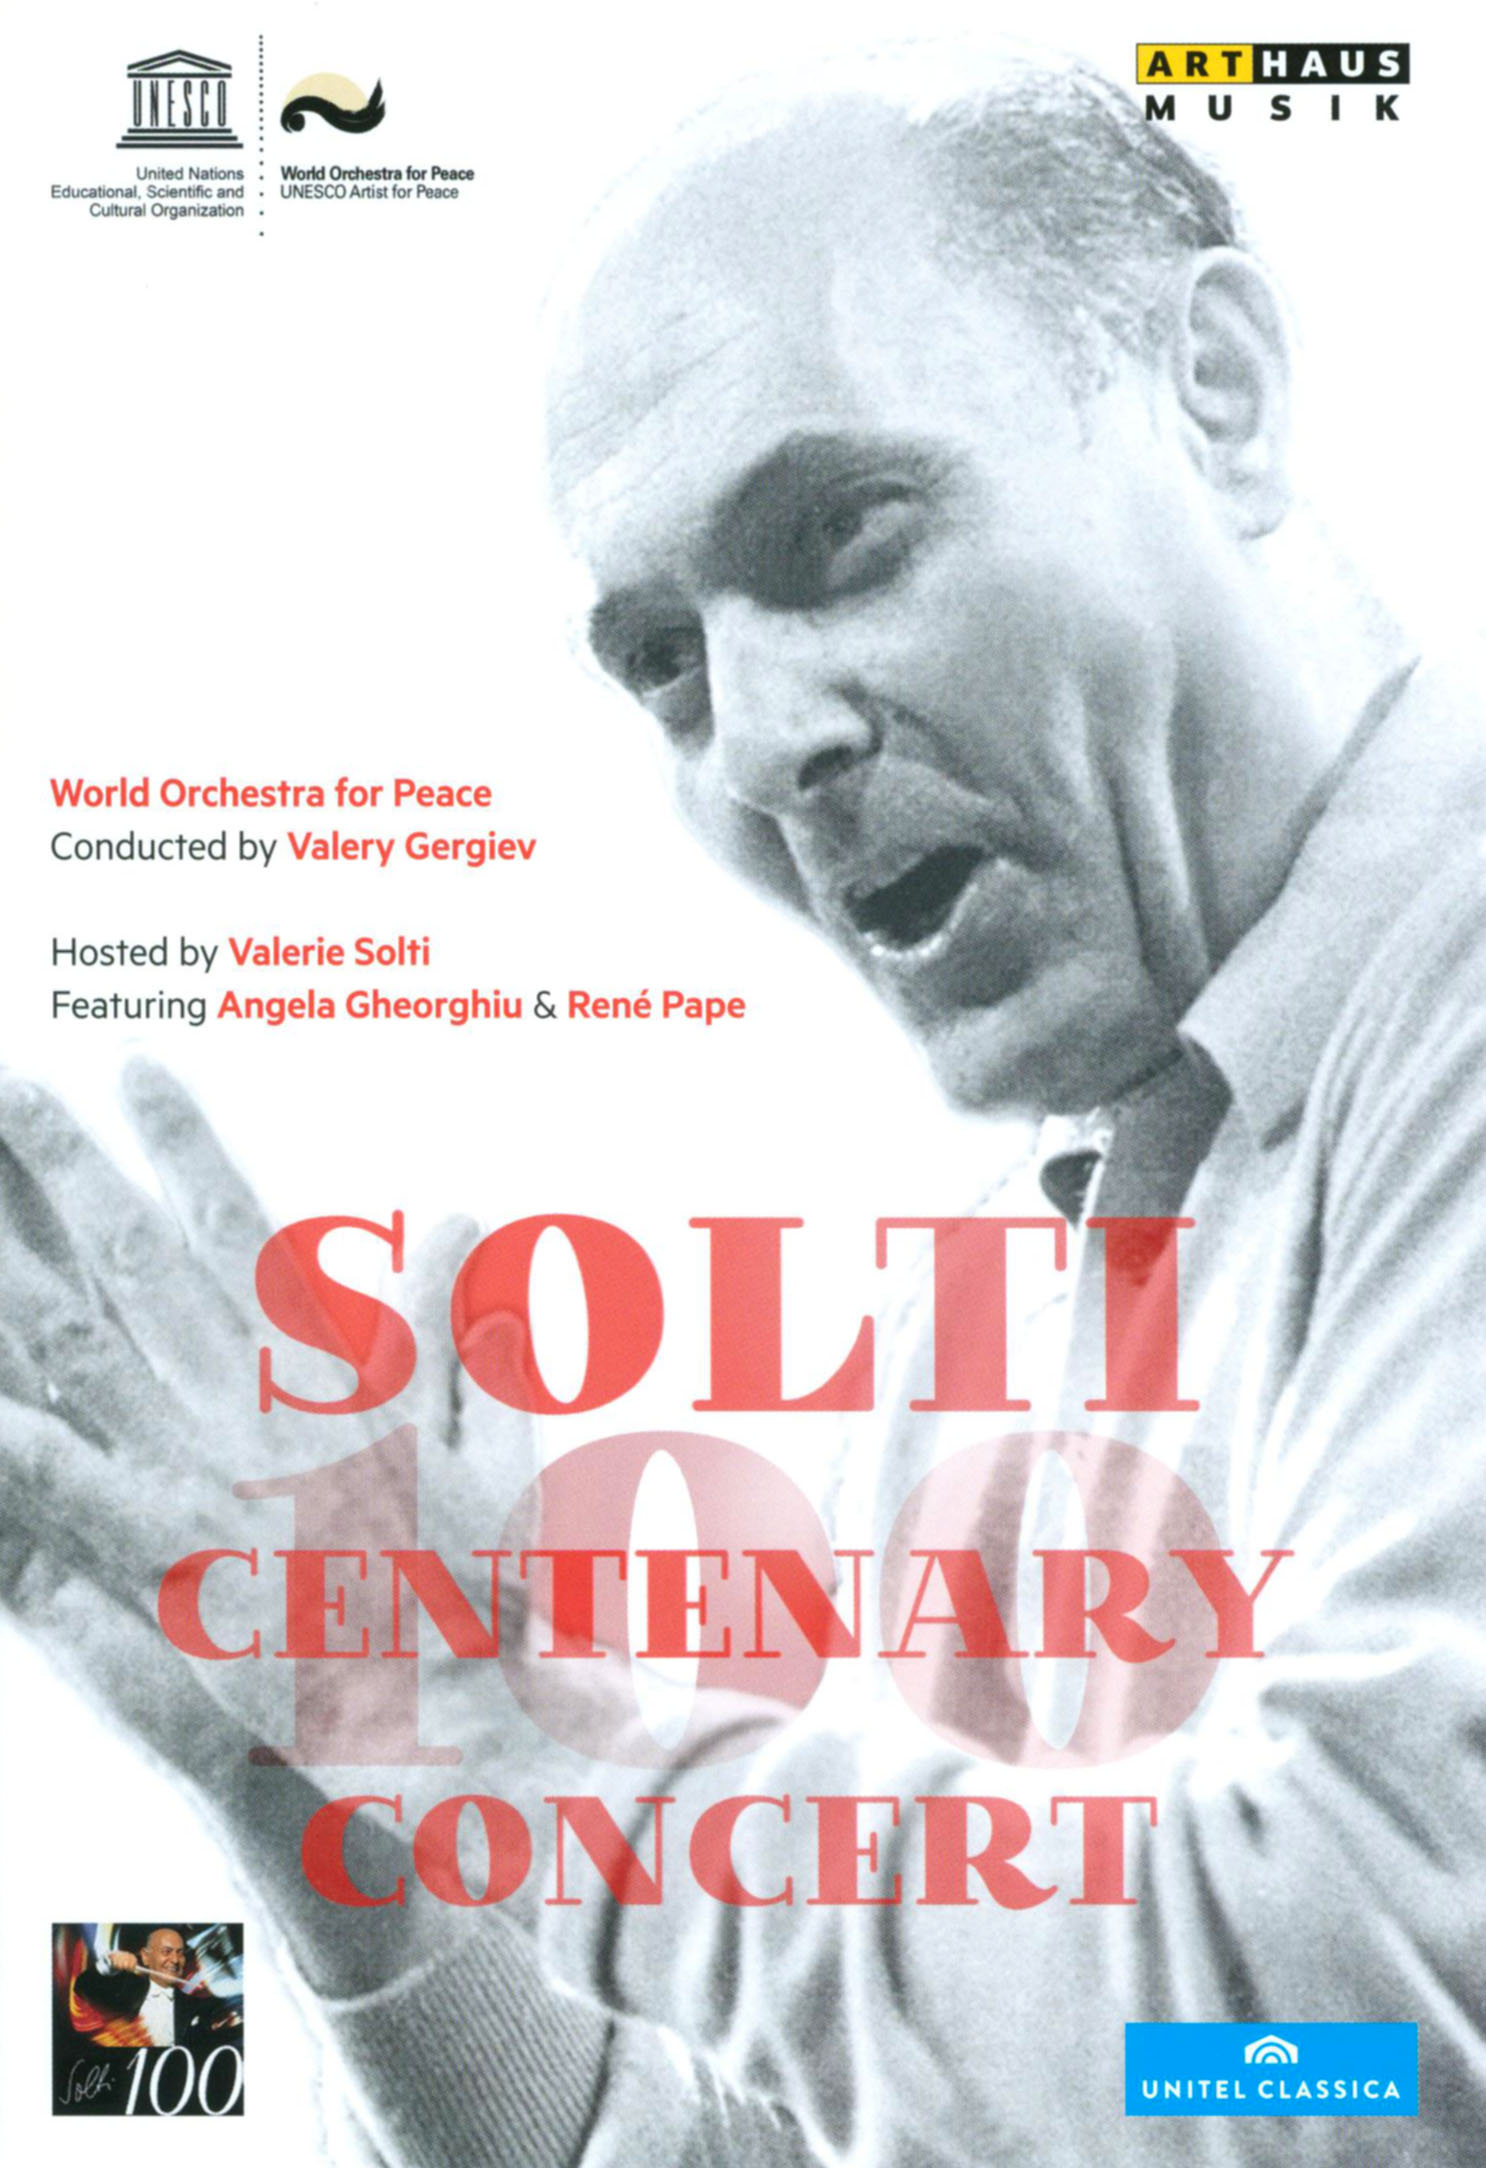 World Orchestra for Peace: Solti Centenary Concert